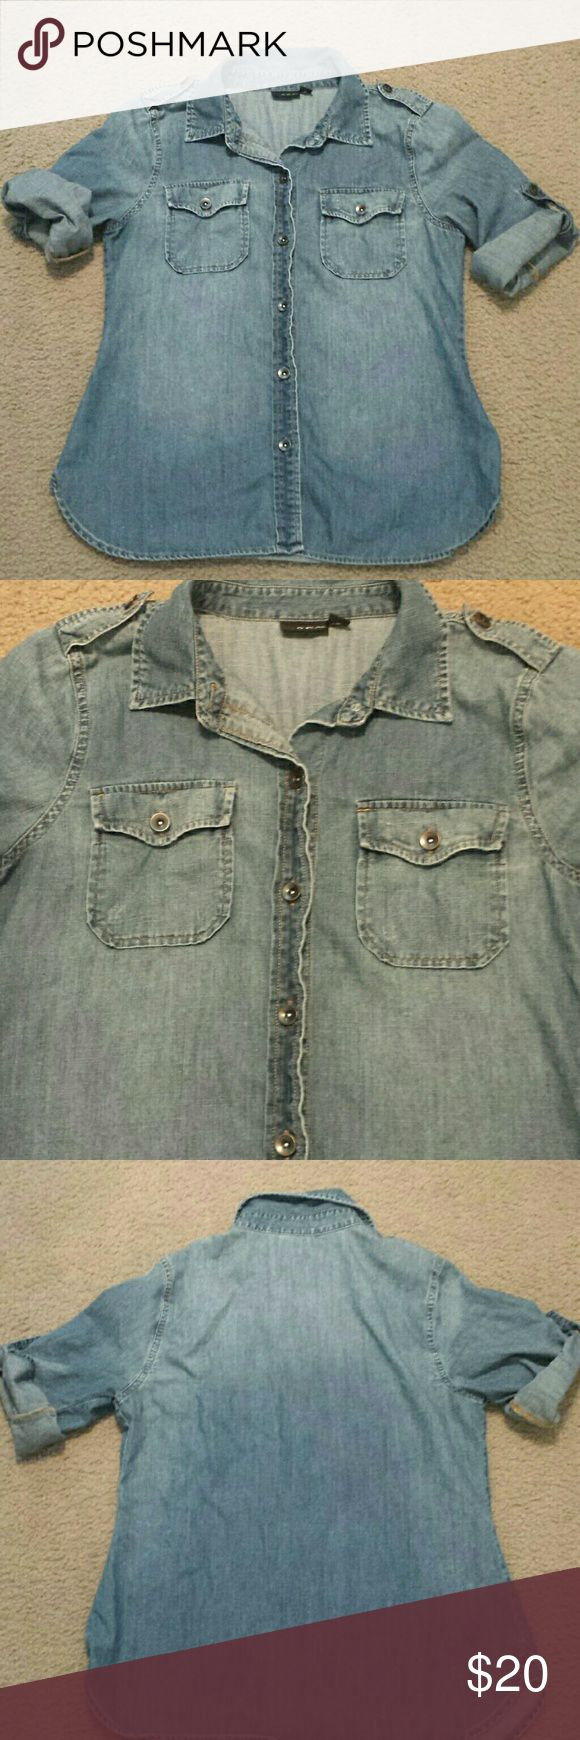 Chambray/Denim button down shirt In good used condition, smoke-free and pet-free home, no pulls, rips or stains a.n.a Tops Button Down Shirts